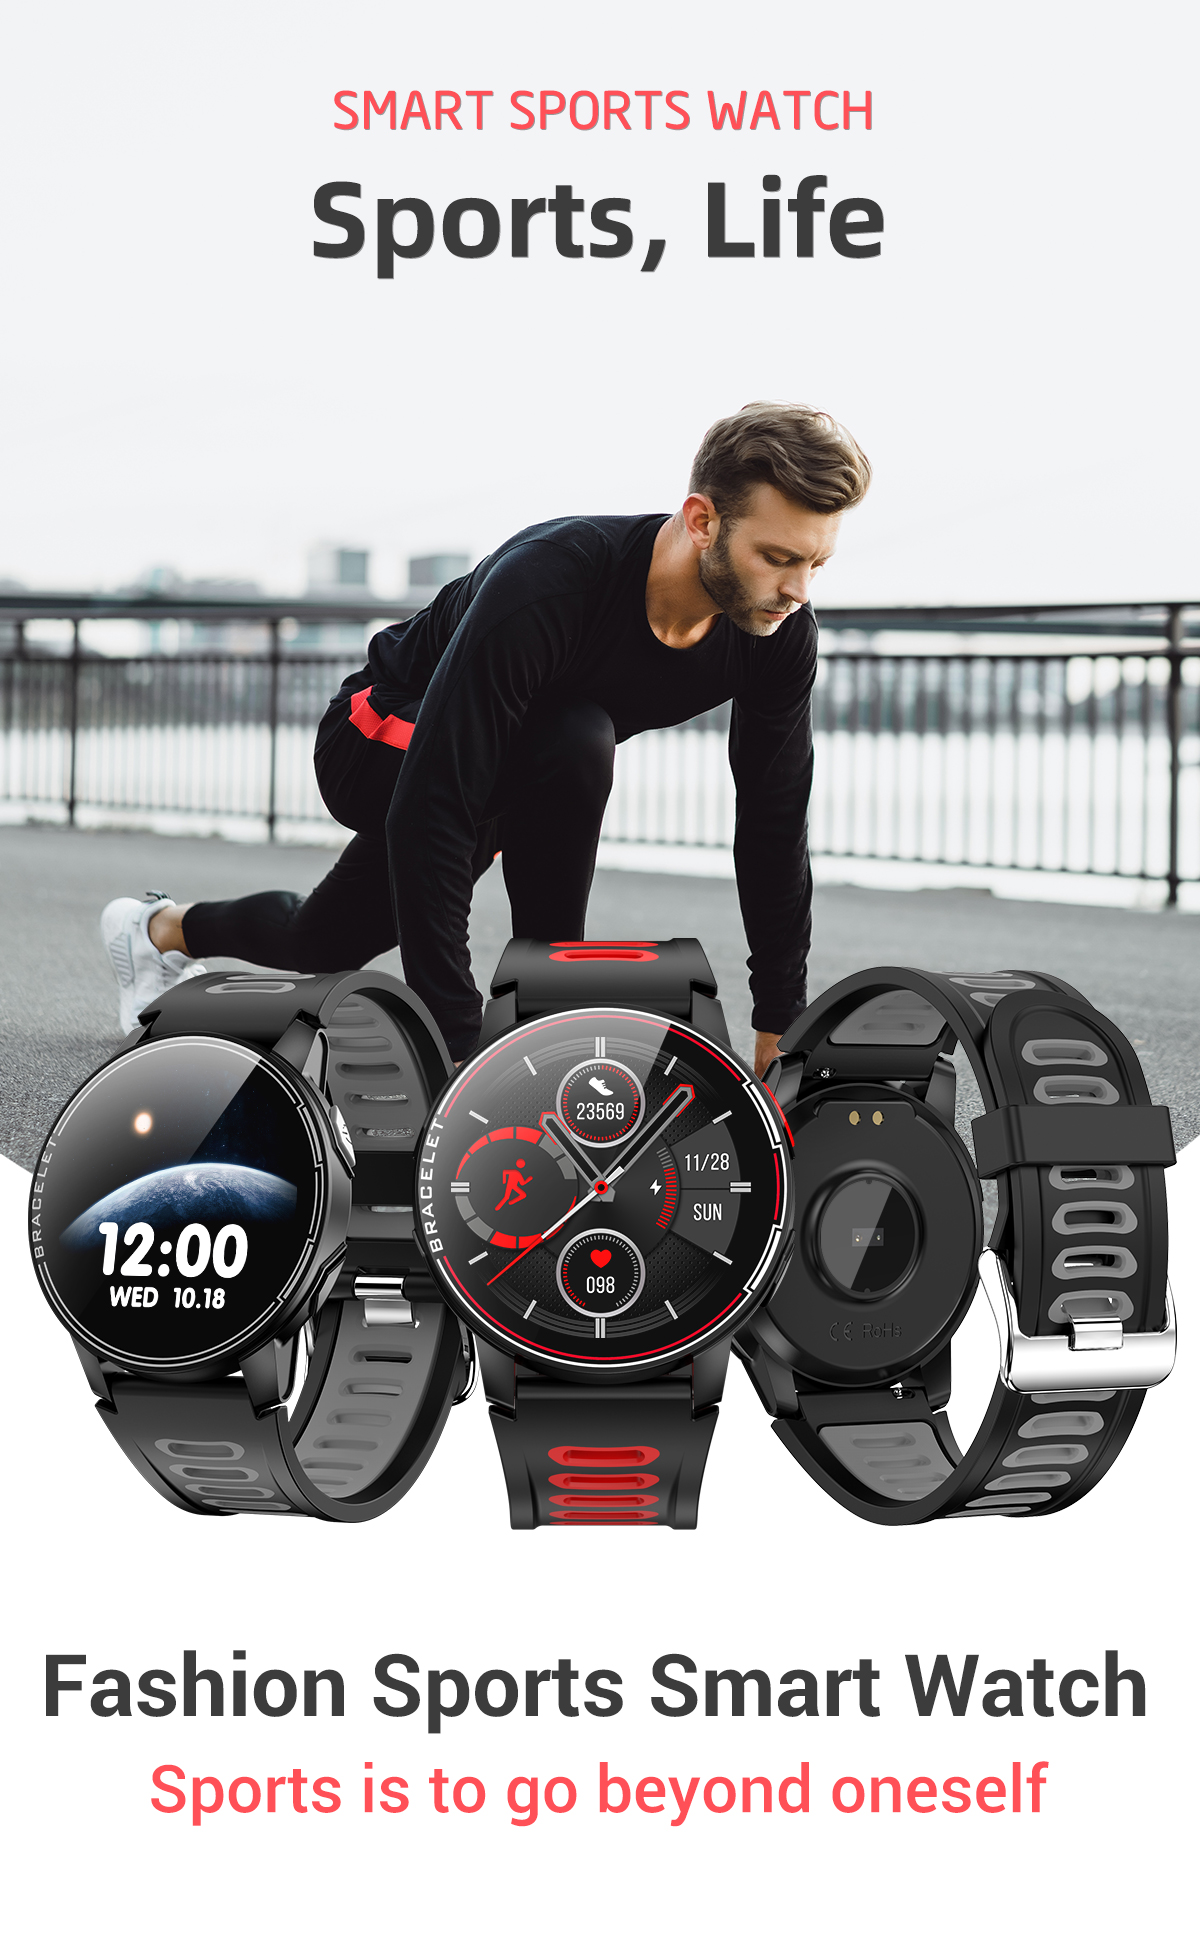 H5c369562c2bb43ad8387665641cb1459j 2020 New L6 Smart Watch IP68 Waterproof Sport Men Women Bluetooth Smartwatch Fitness Tracker Heart Rate Monitor For Android IOS